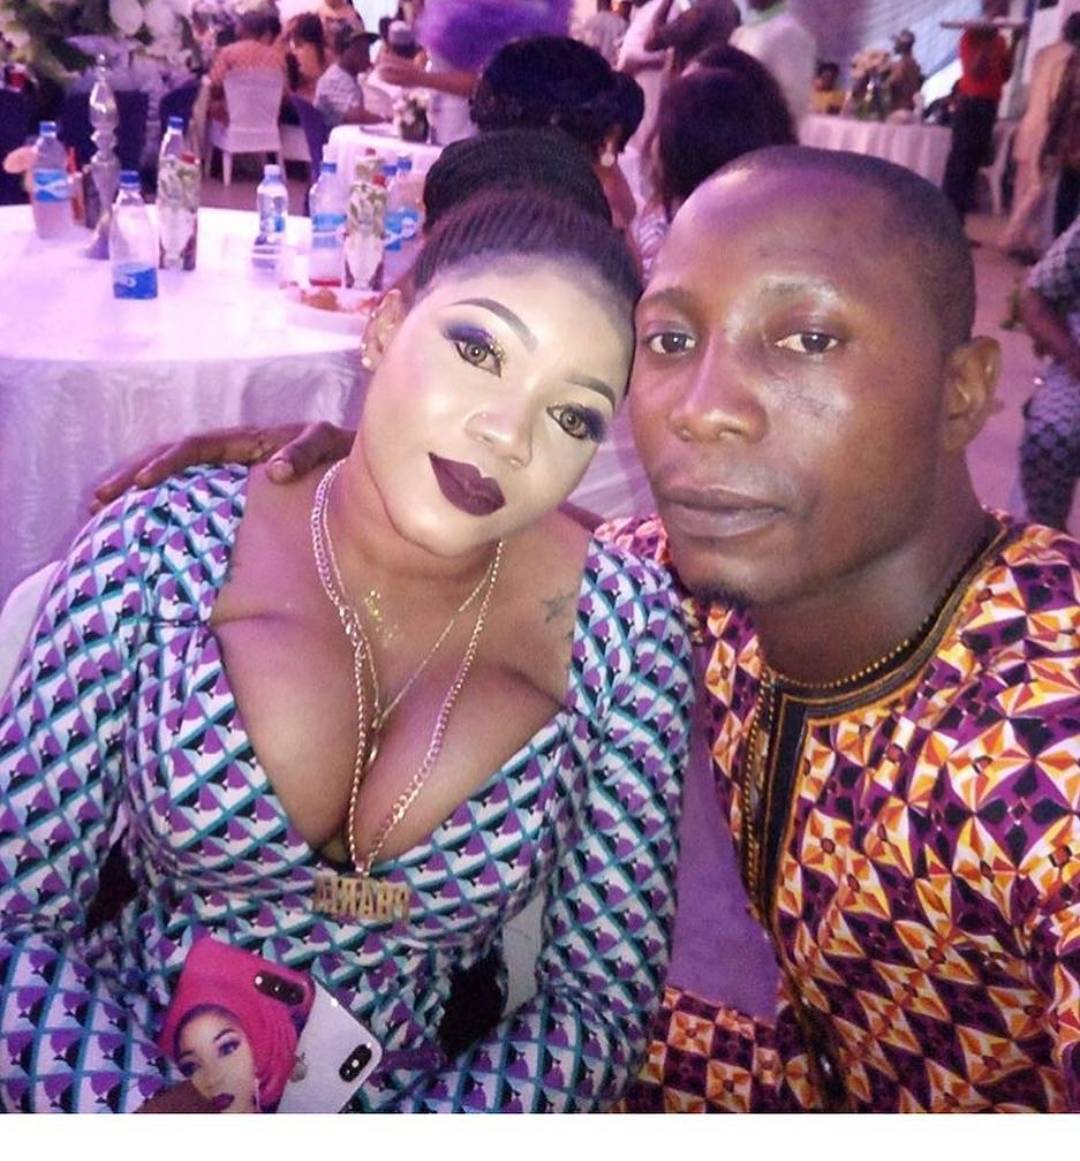 Endowed female guest at Omotola's party has people talking